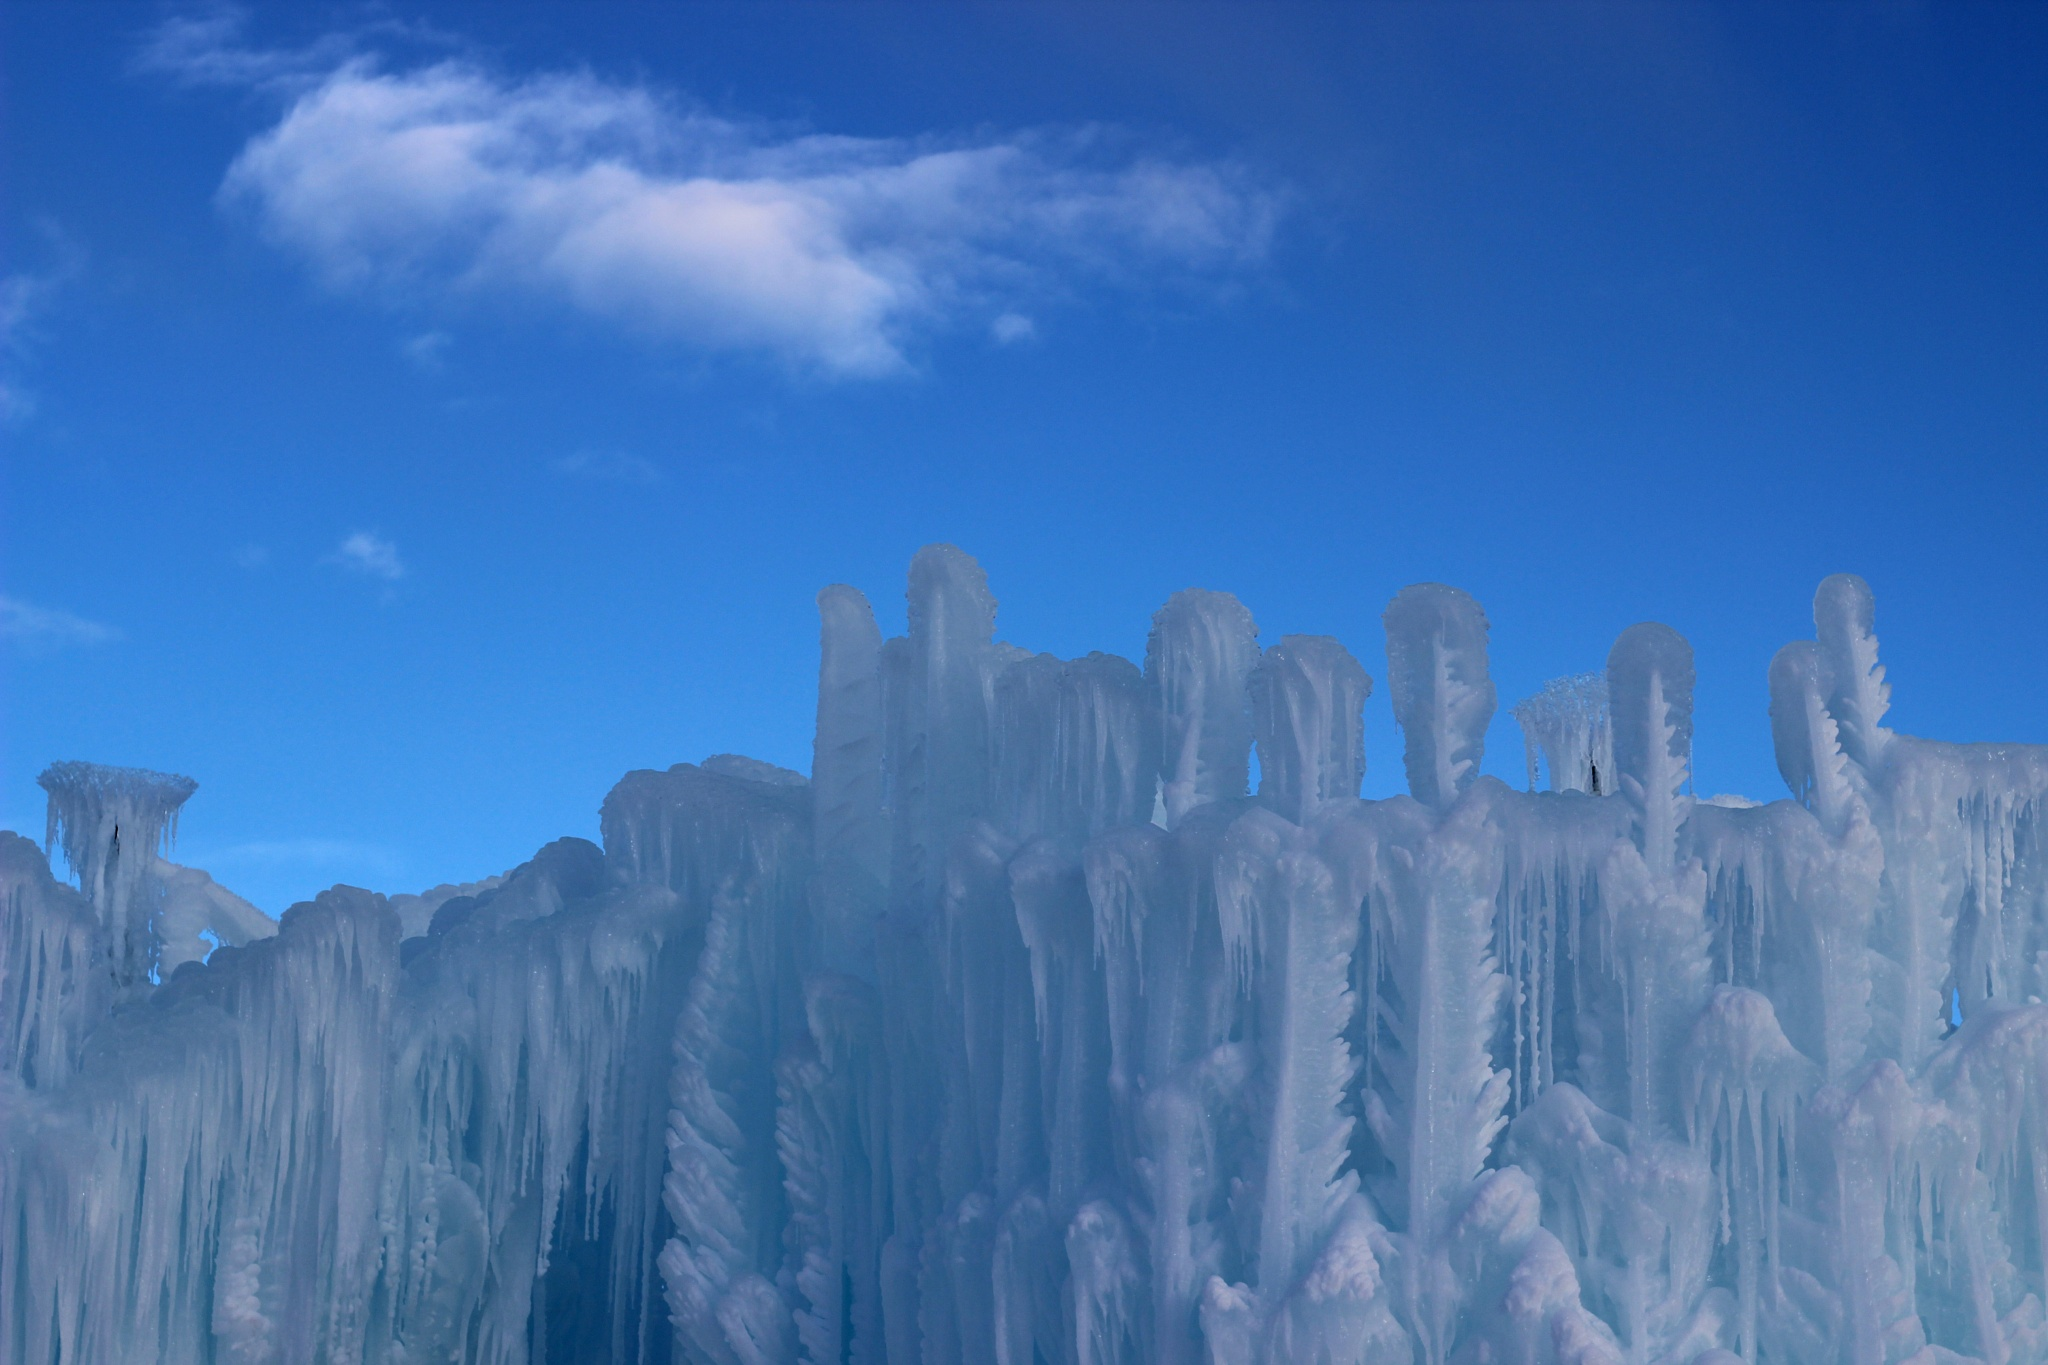 Ice Castles by Alex Young